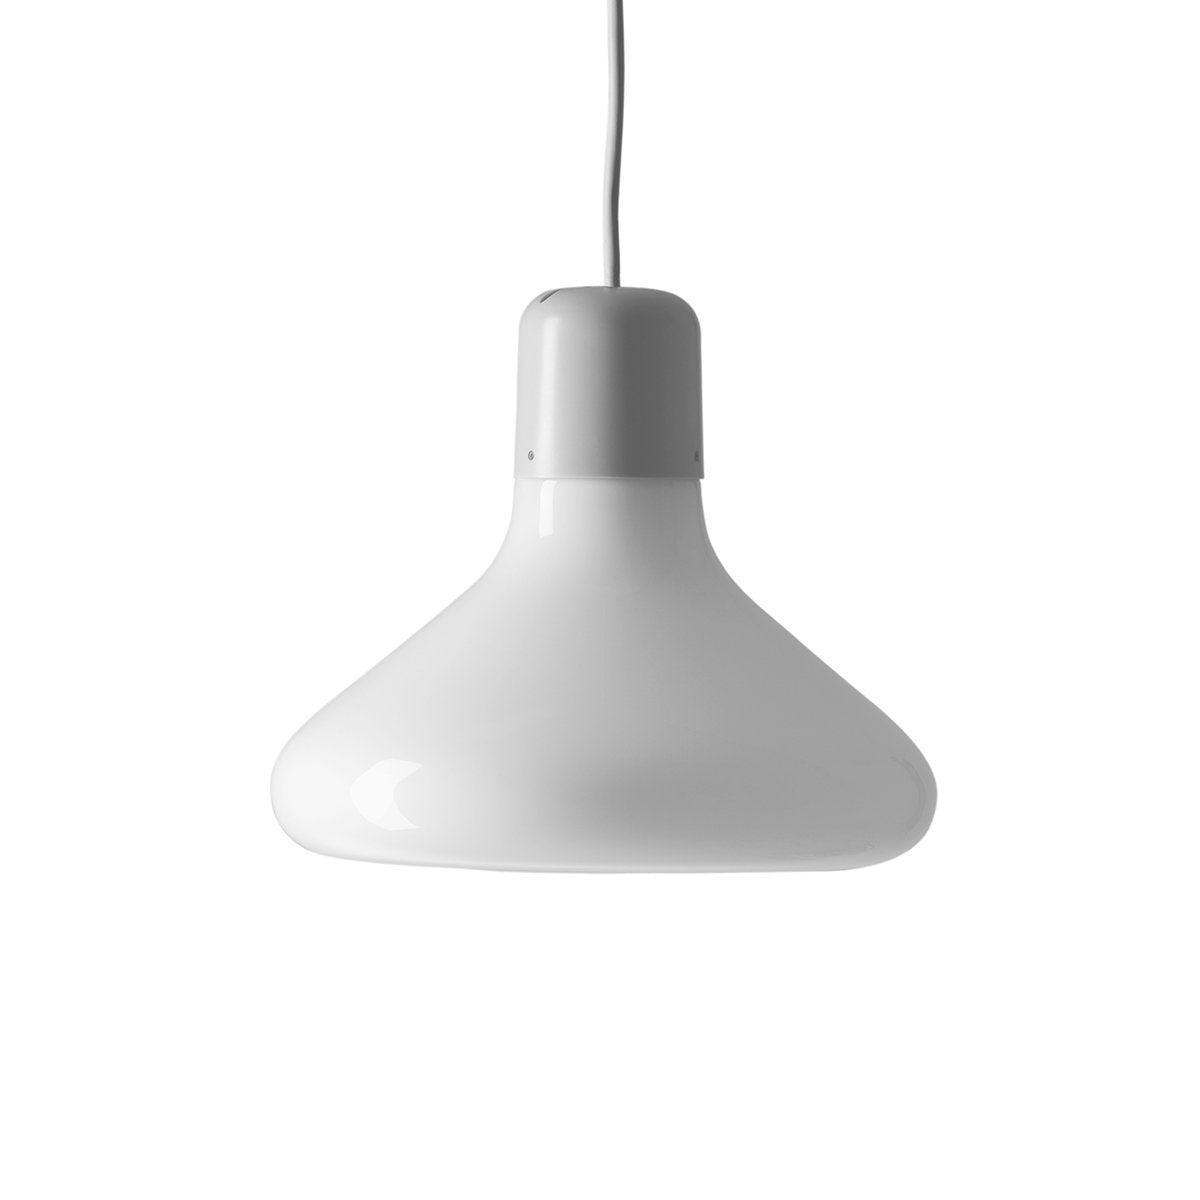 Design House Stockholm Form Ceiling Lamp . Cone